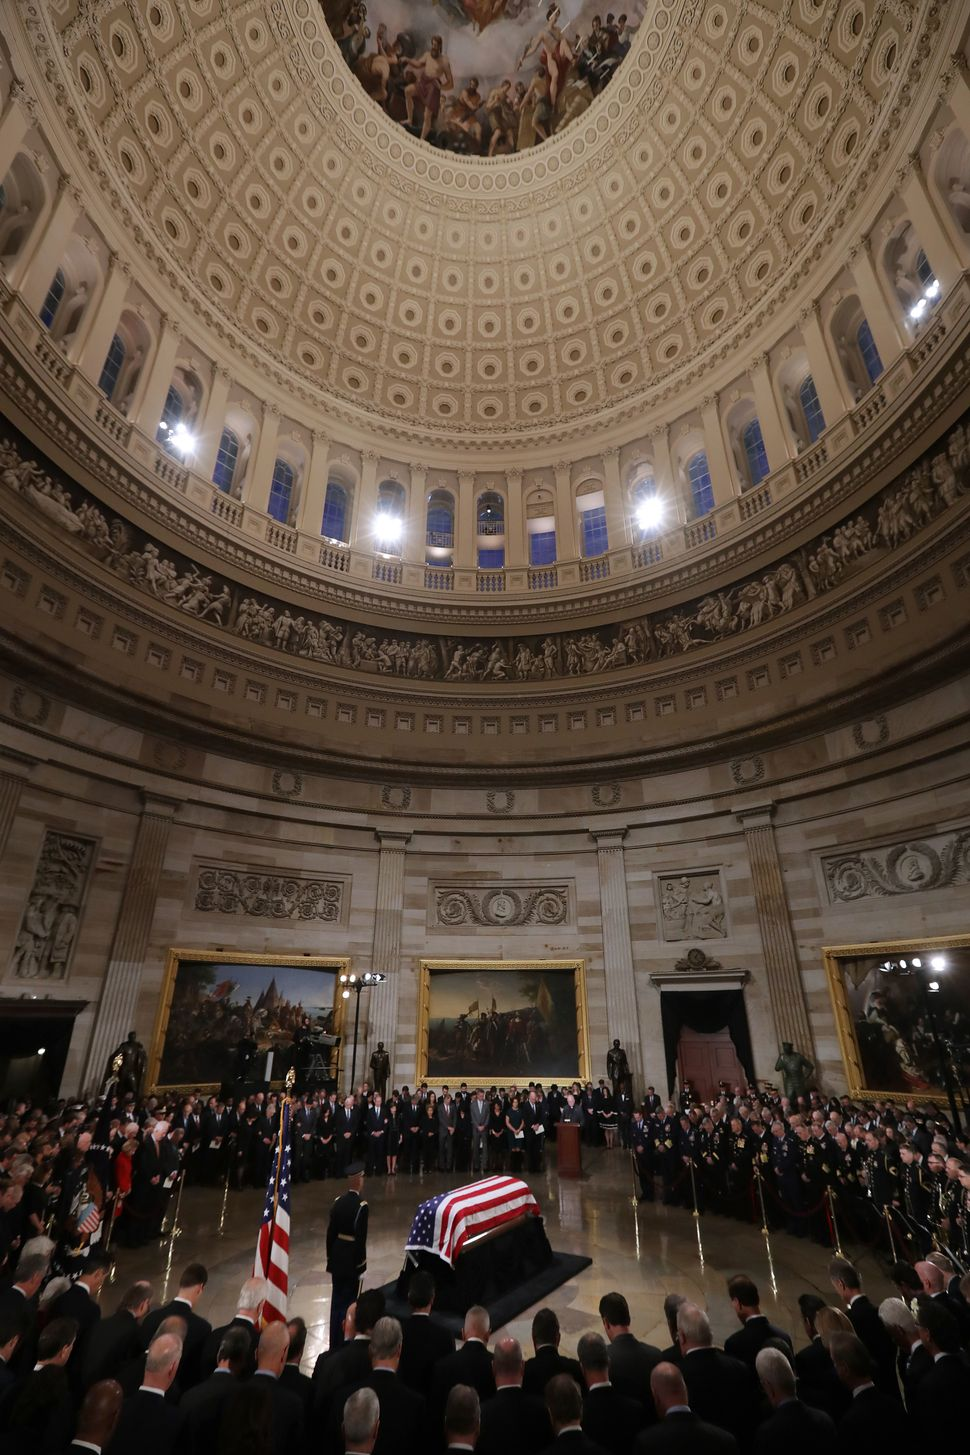 Bush's flag-draped casket lies in state inside the Capitol Rotunda.